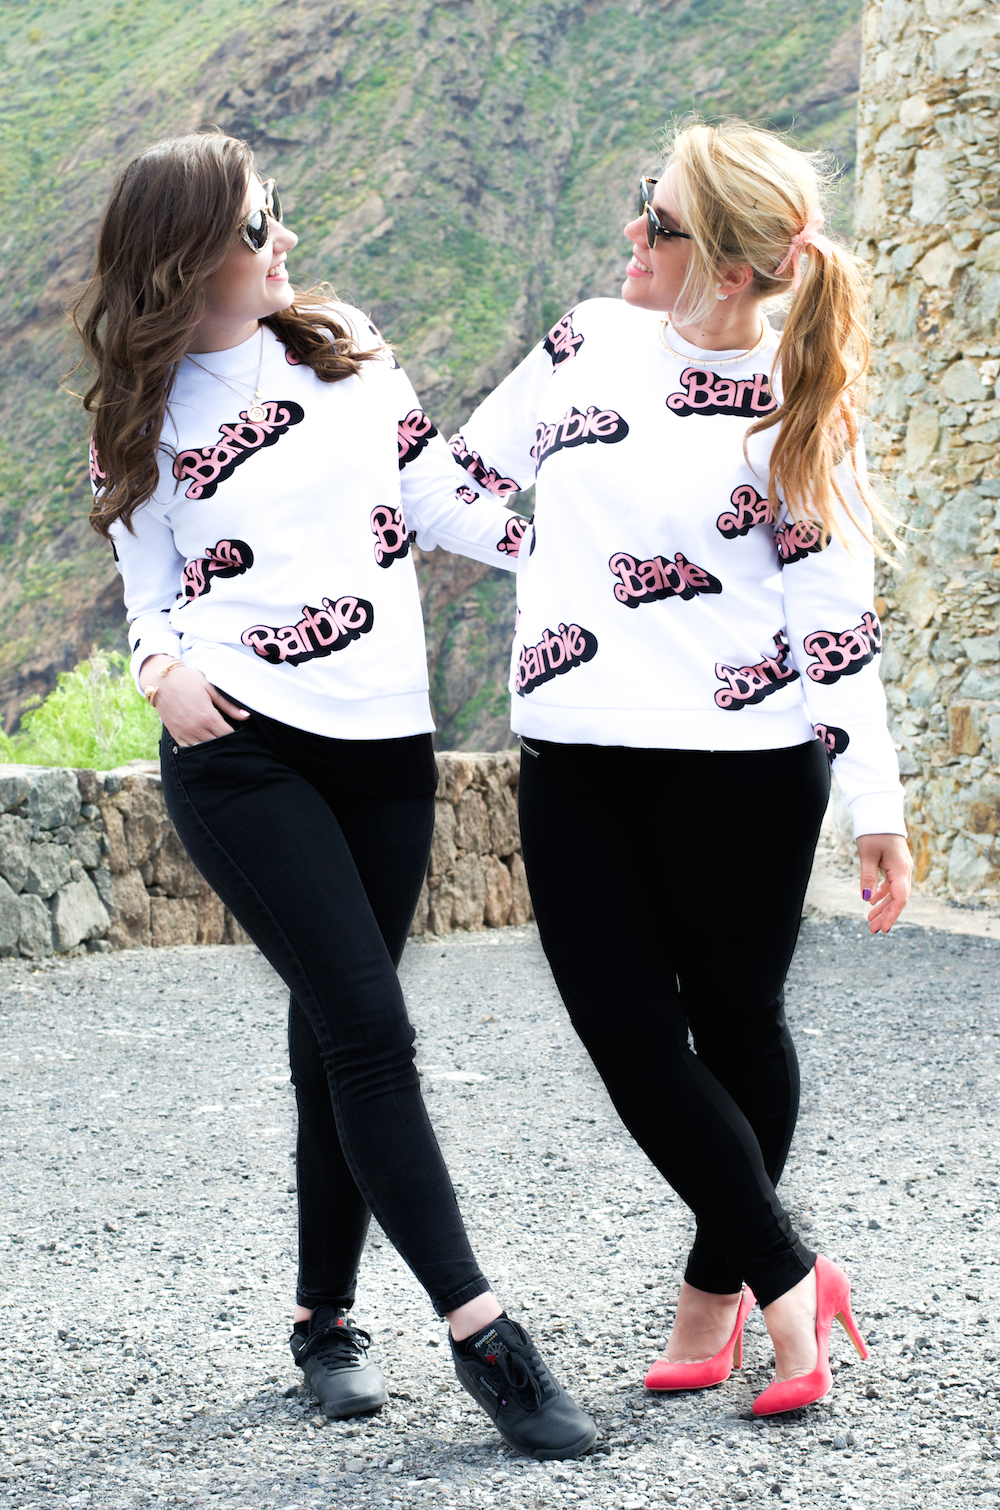 Zara-Barbie-Pullover-moschino-outfit